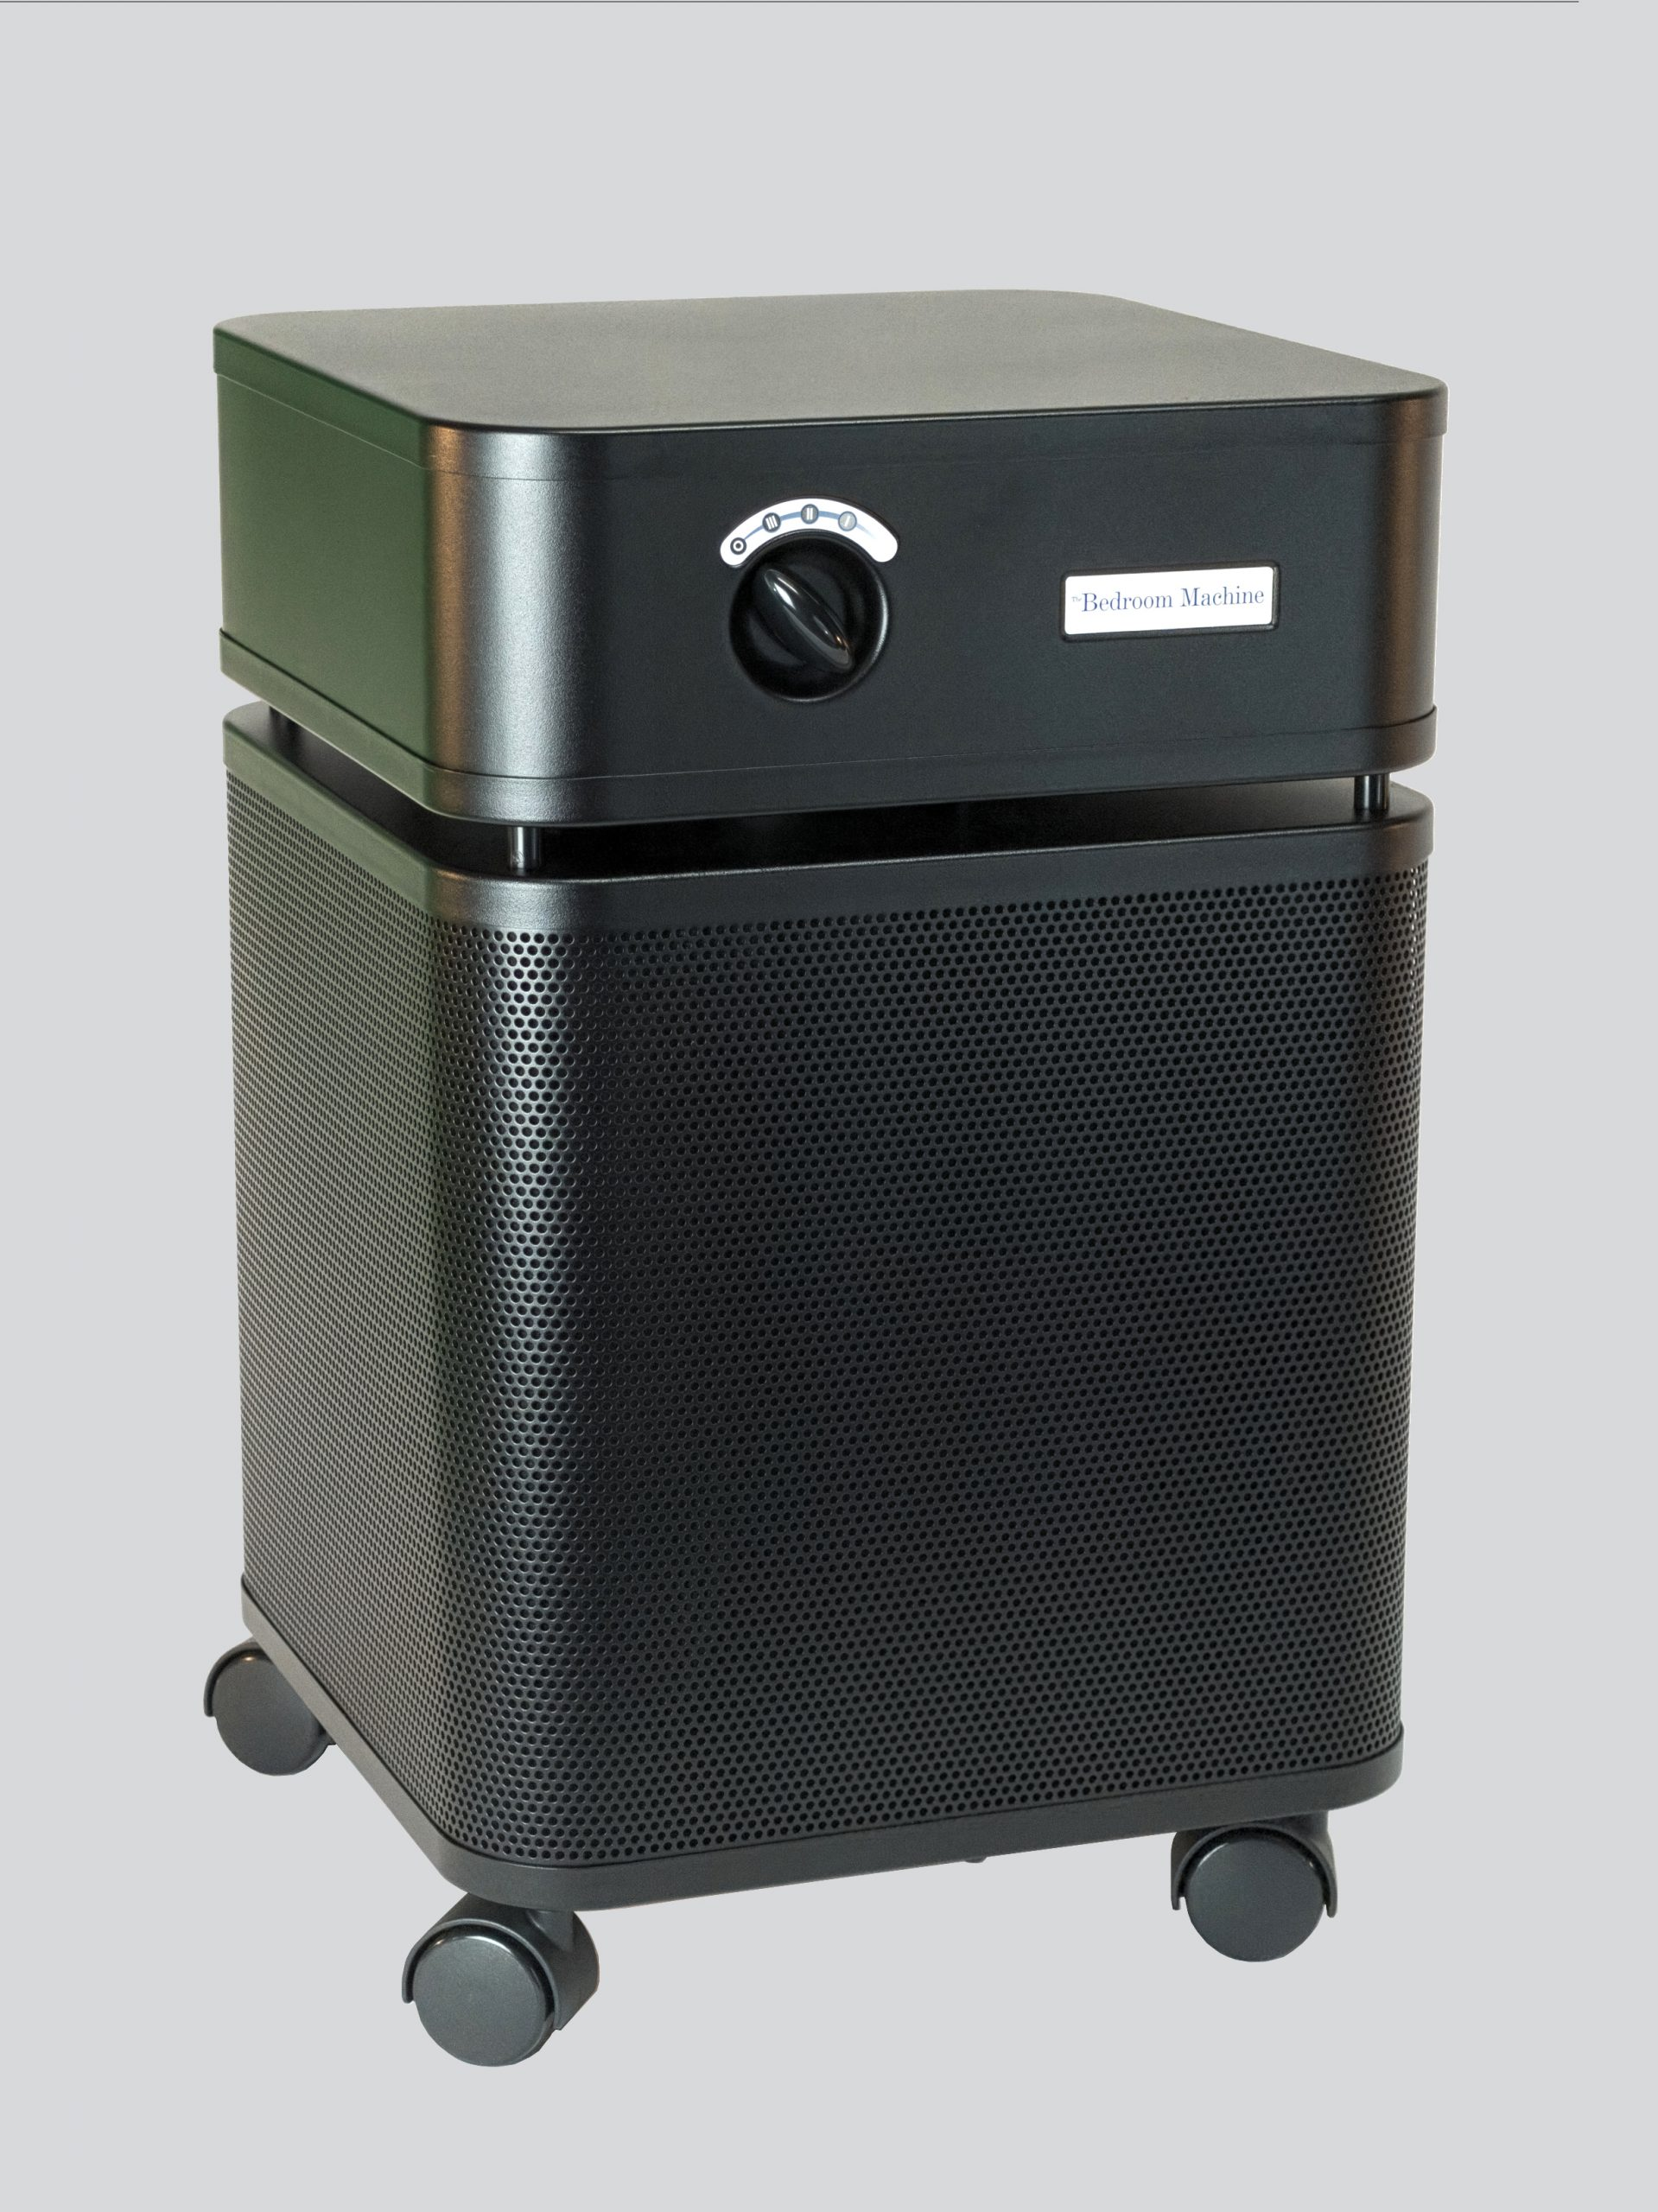 The Bedroom Machine Welcome To Austin Air Systems Clinically Proven Air Purifiers